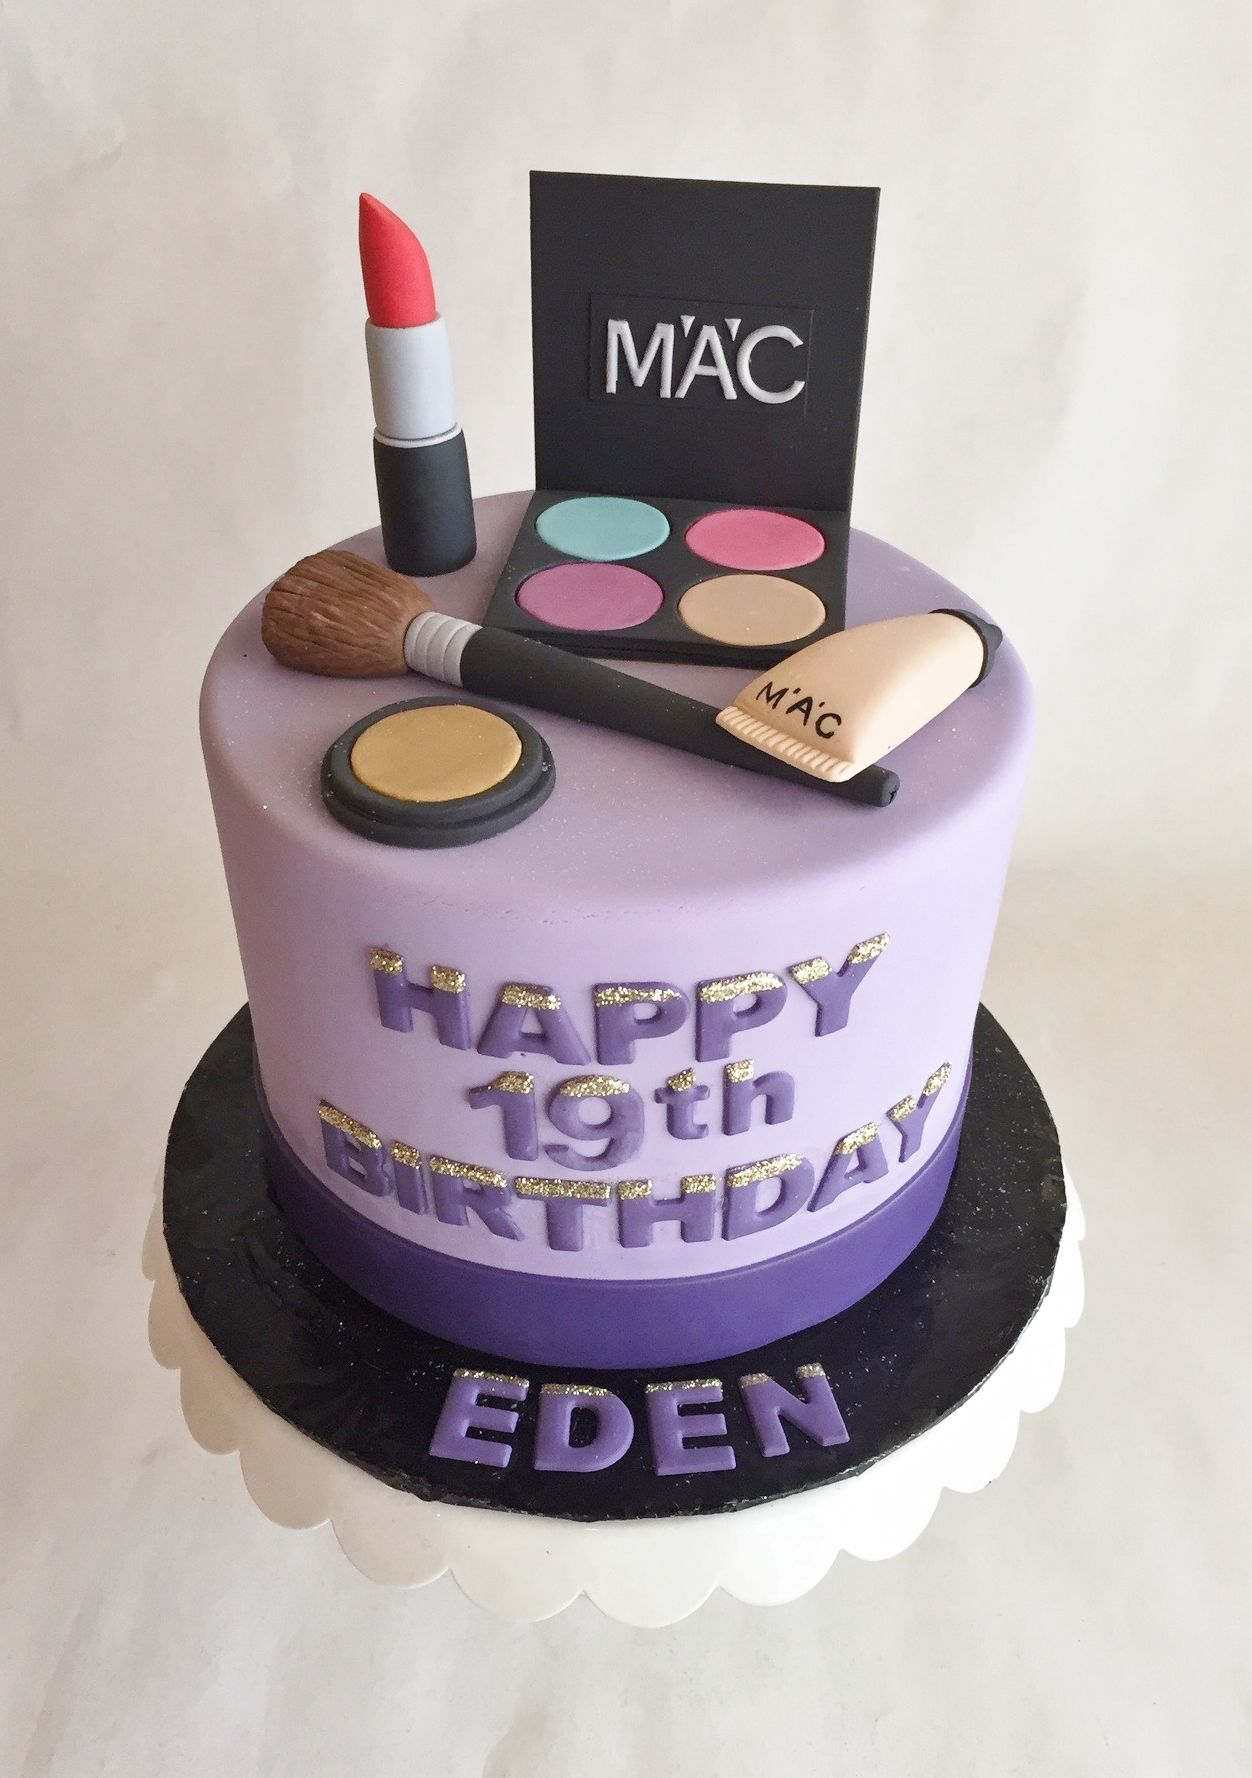 MAC makeup cake | birthday cake | MAC | eyeshadow | lipstick | concealer | powder | brush | fondant | custom toppers | buttercream